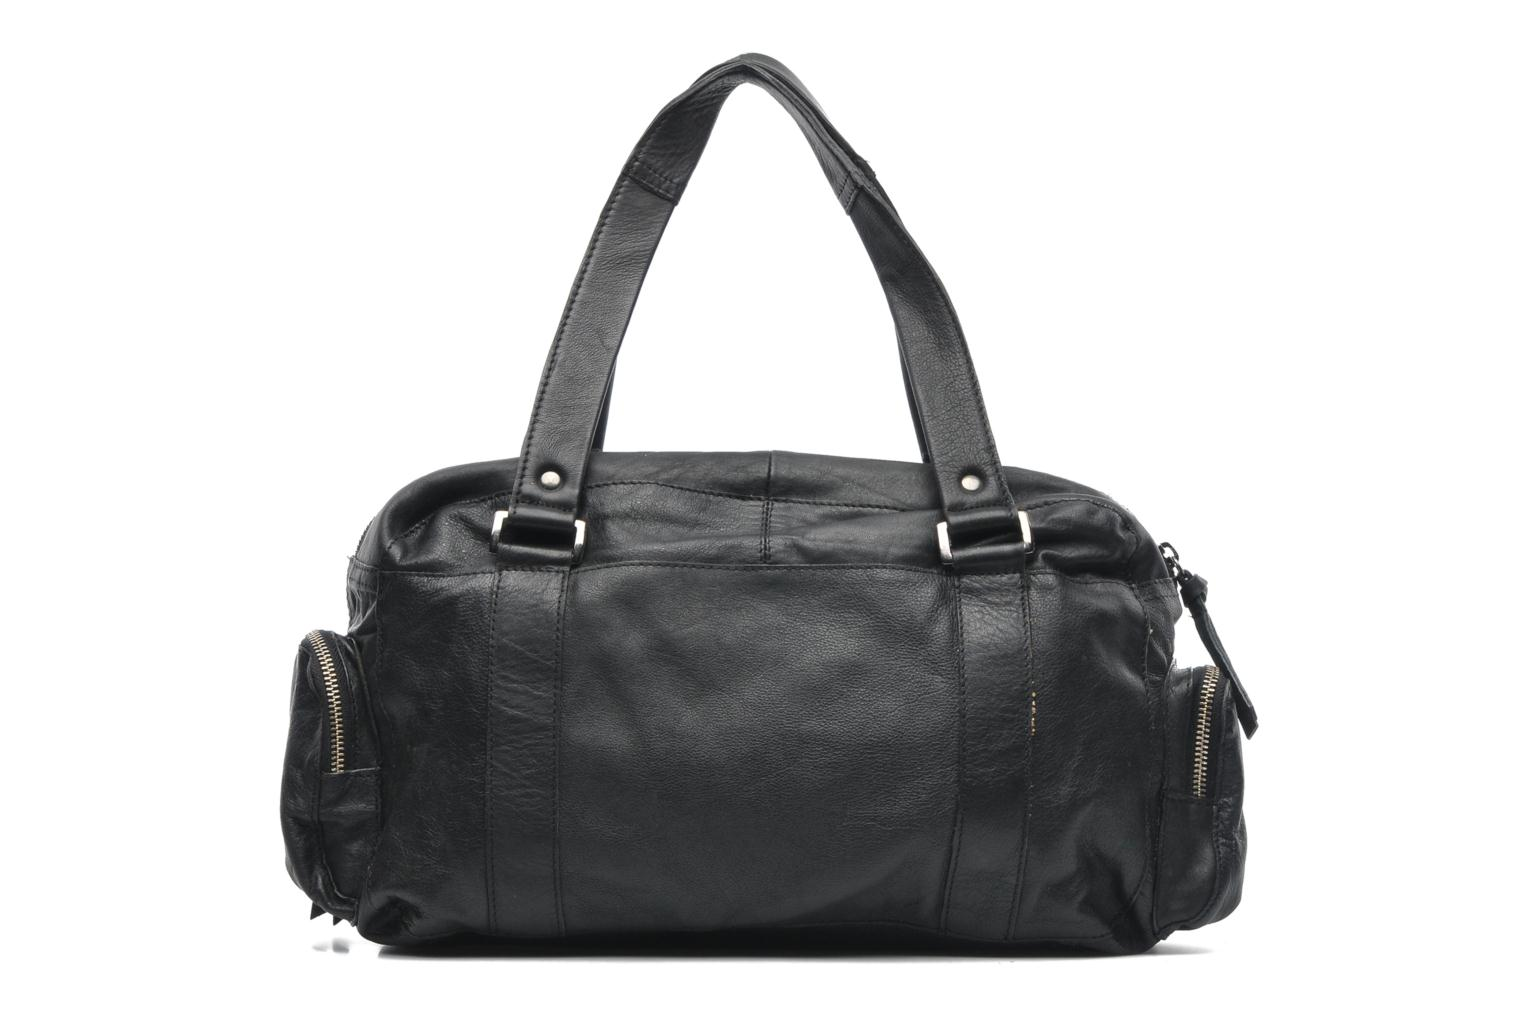 Handbags Pieces Totally Royal leather Small bag Black front view